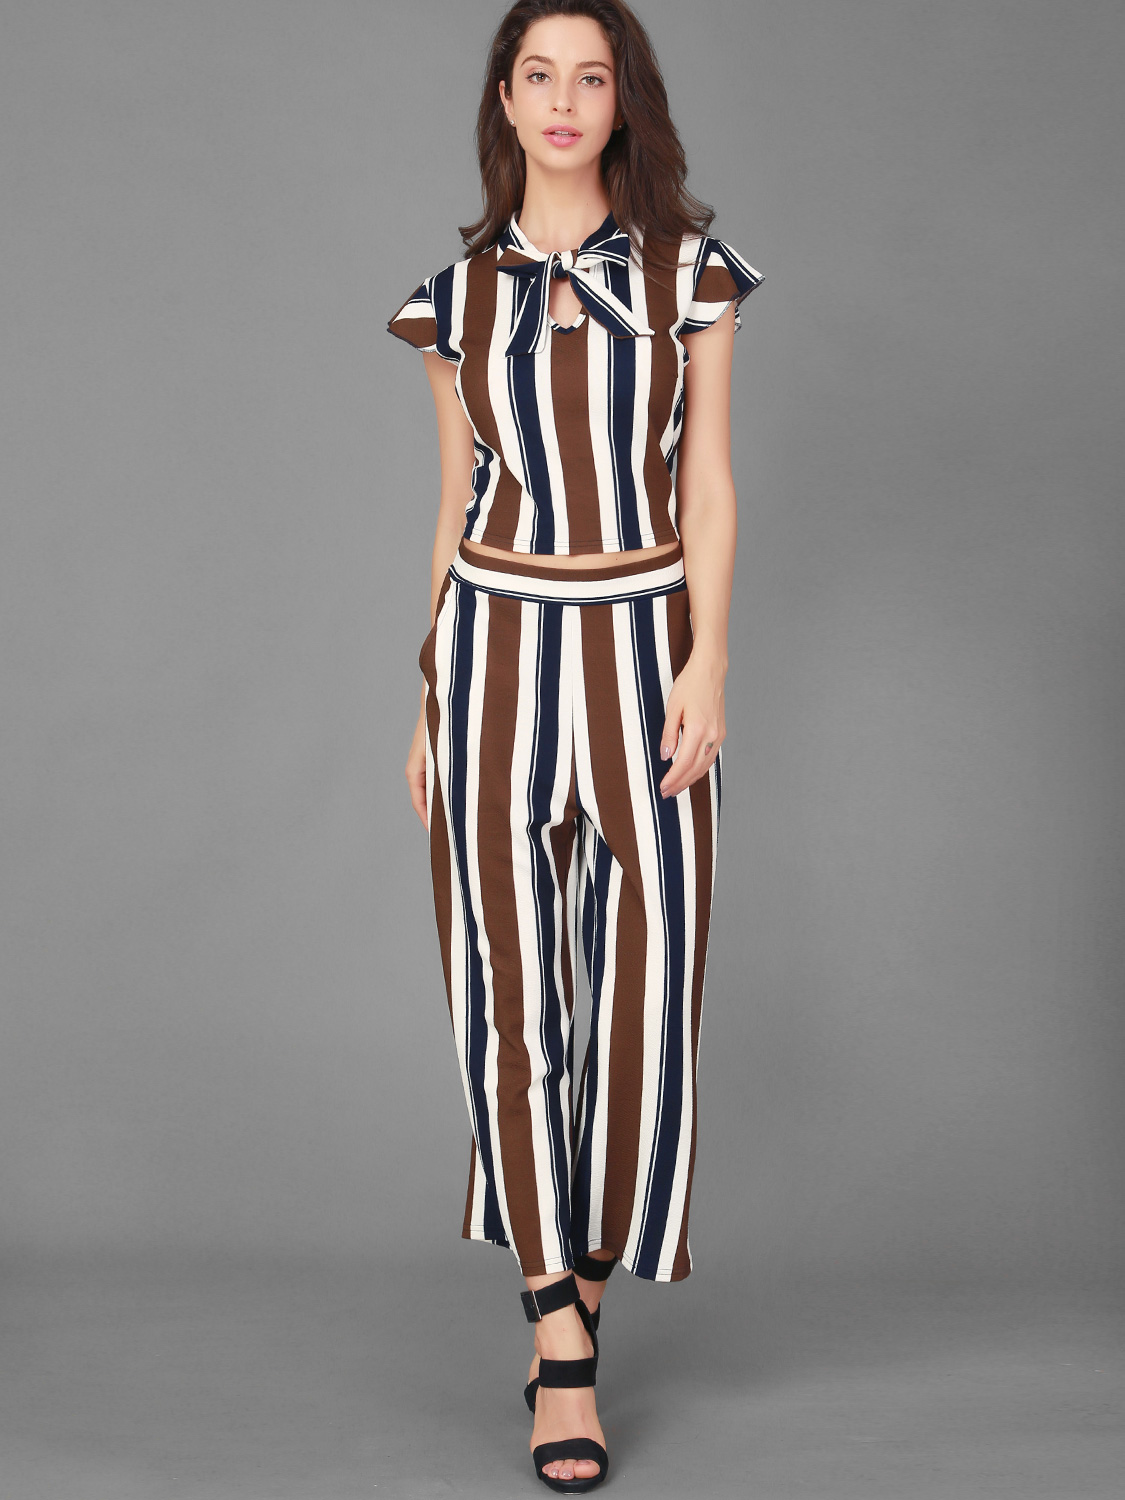 27339b547a1 US  26 - Contrast Striped Flutter Sleeve Tie Neck Crop Tops and High Waist  Pants Sets - www.onebling.com